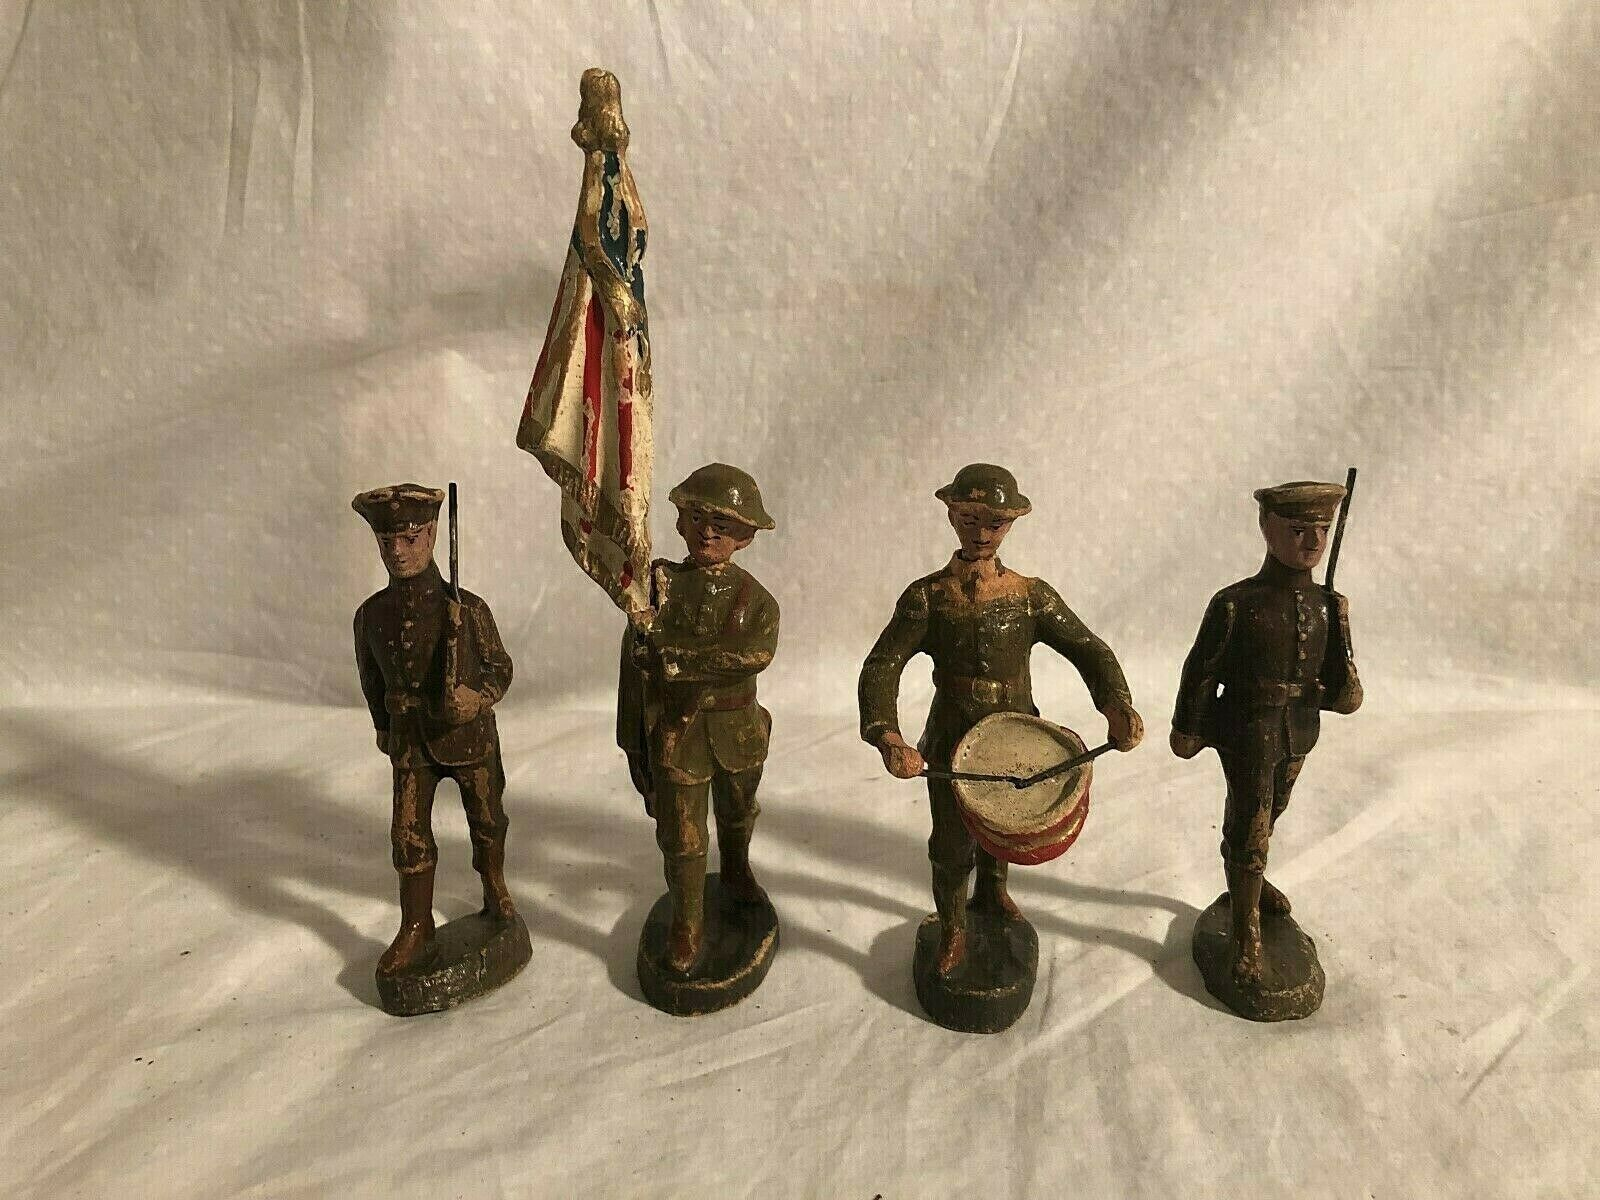 Elastolin Hausser Large Size 10cm Soldiers Lot Of 4 Germany Pre War 1930s